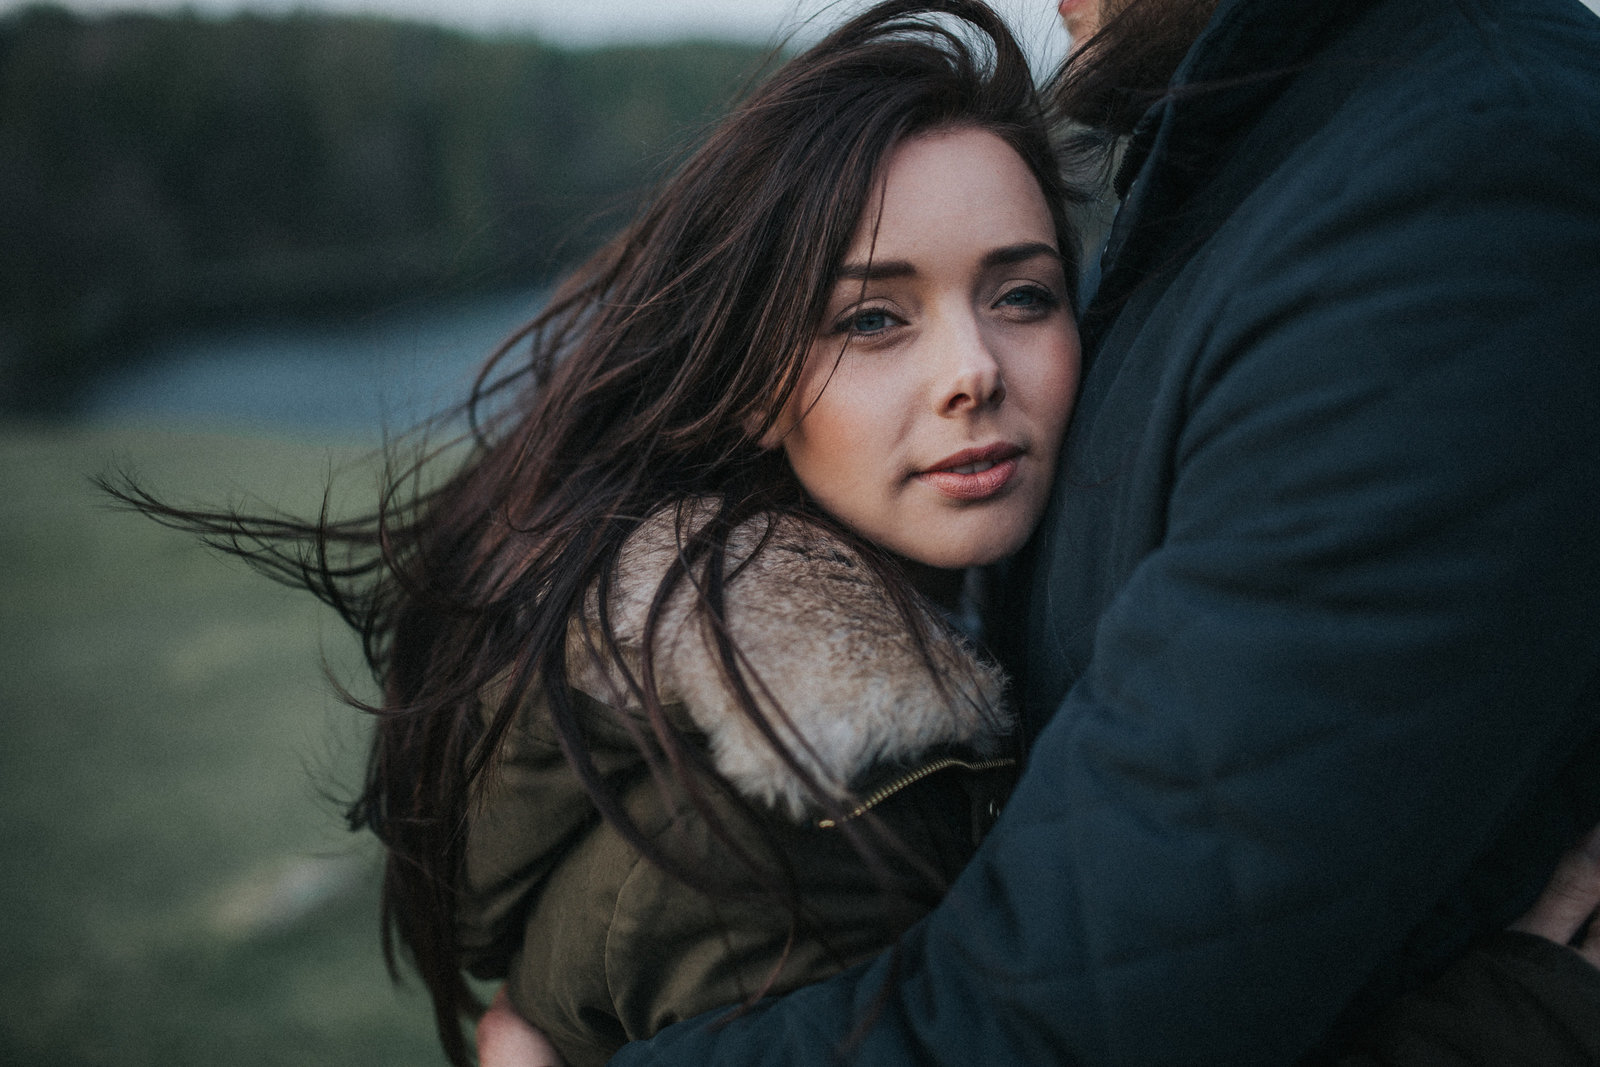 Girl hugging fiance with hair blowing in the wind